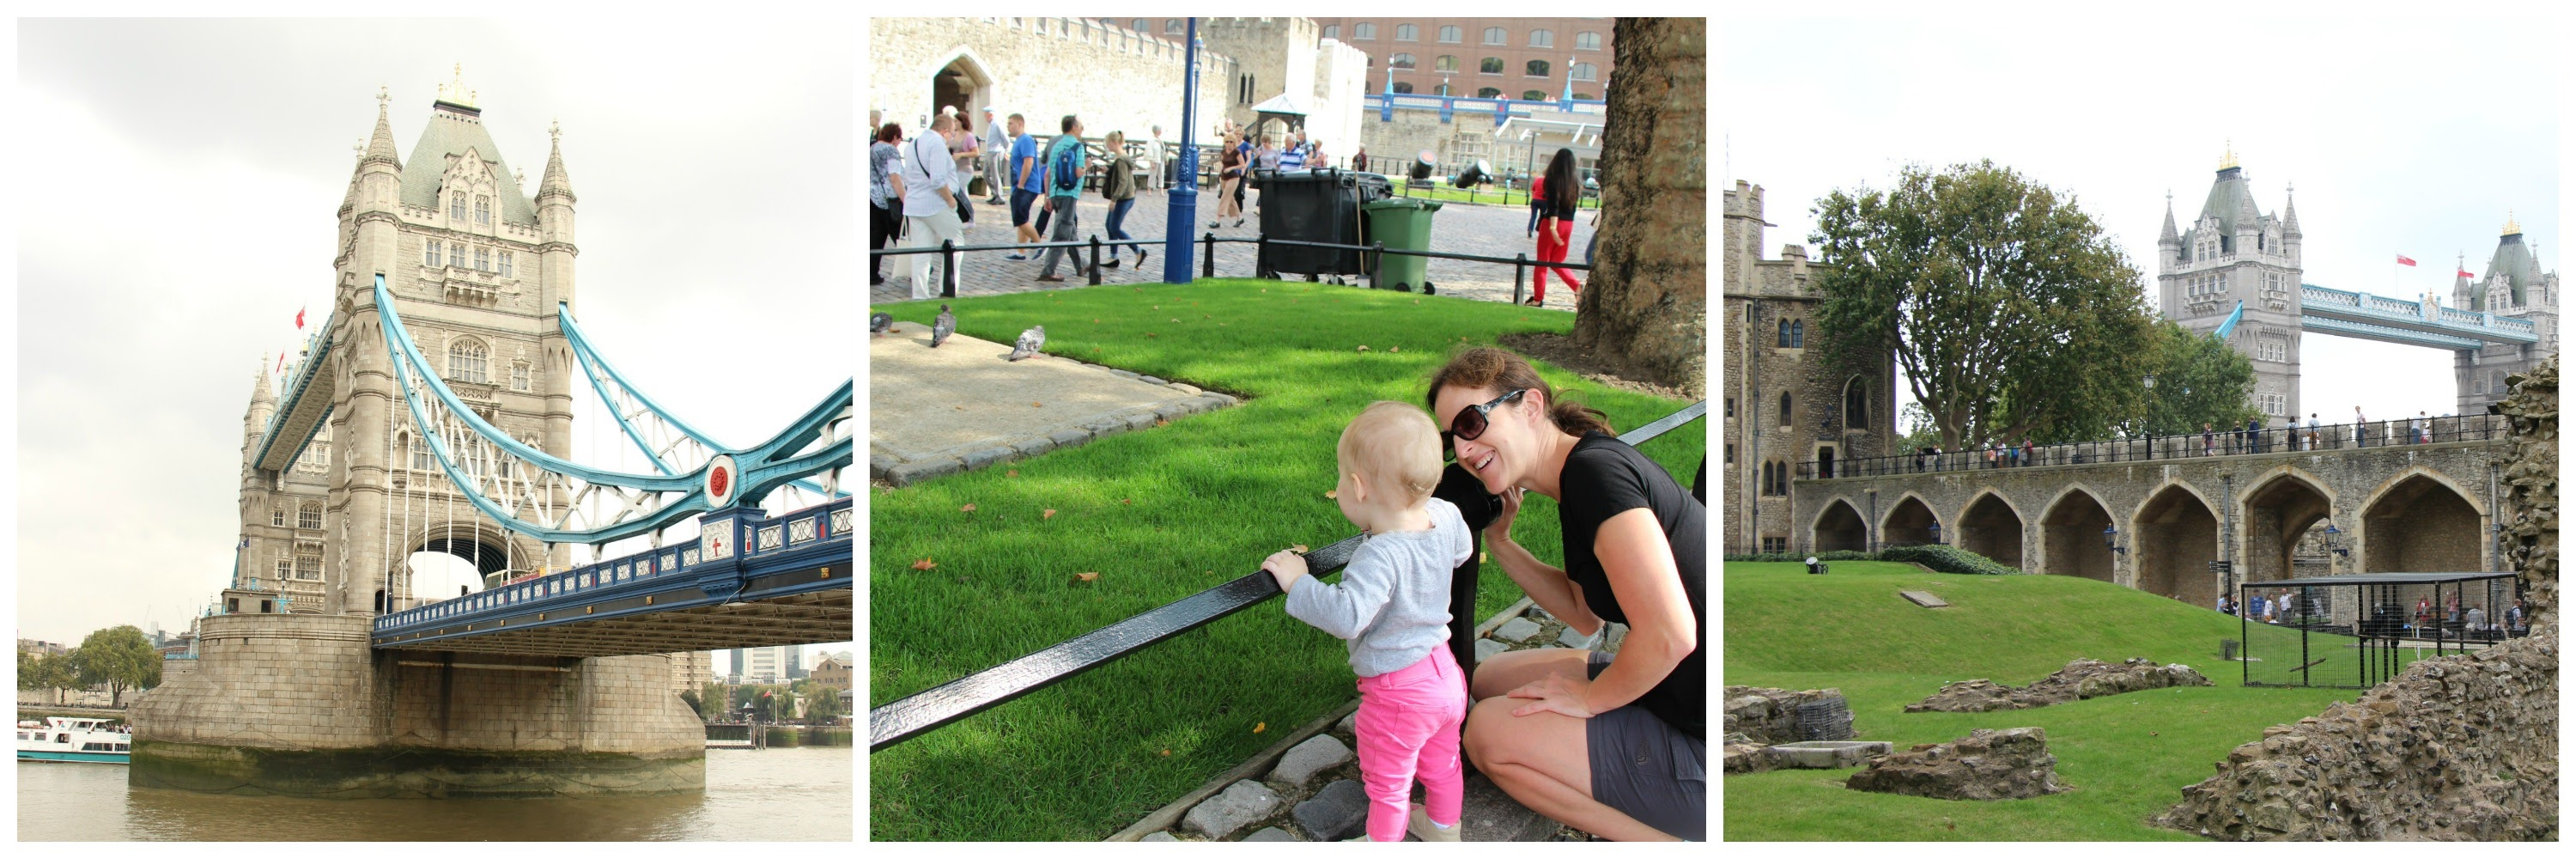 Baby Can Travel - London Playgrounds and Parks for Babies or Toddlers - Tower of London